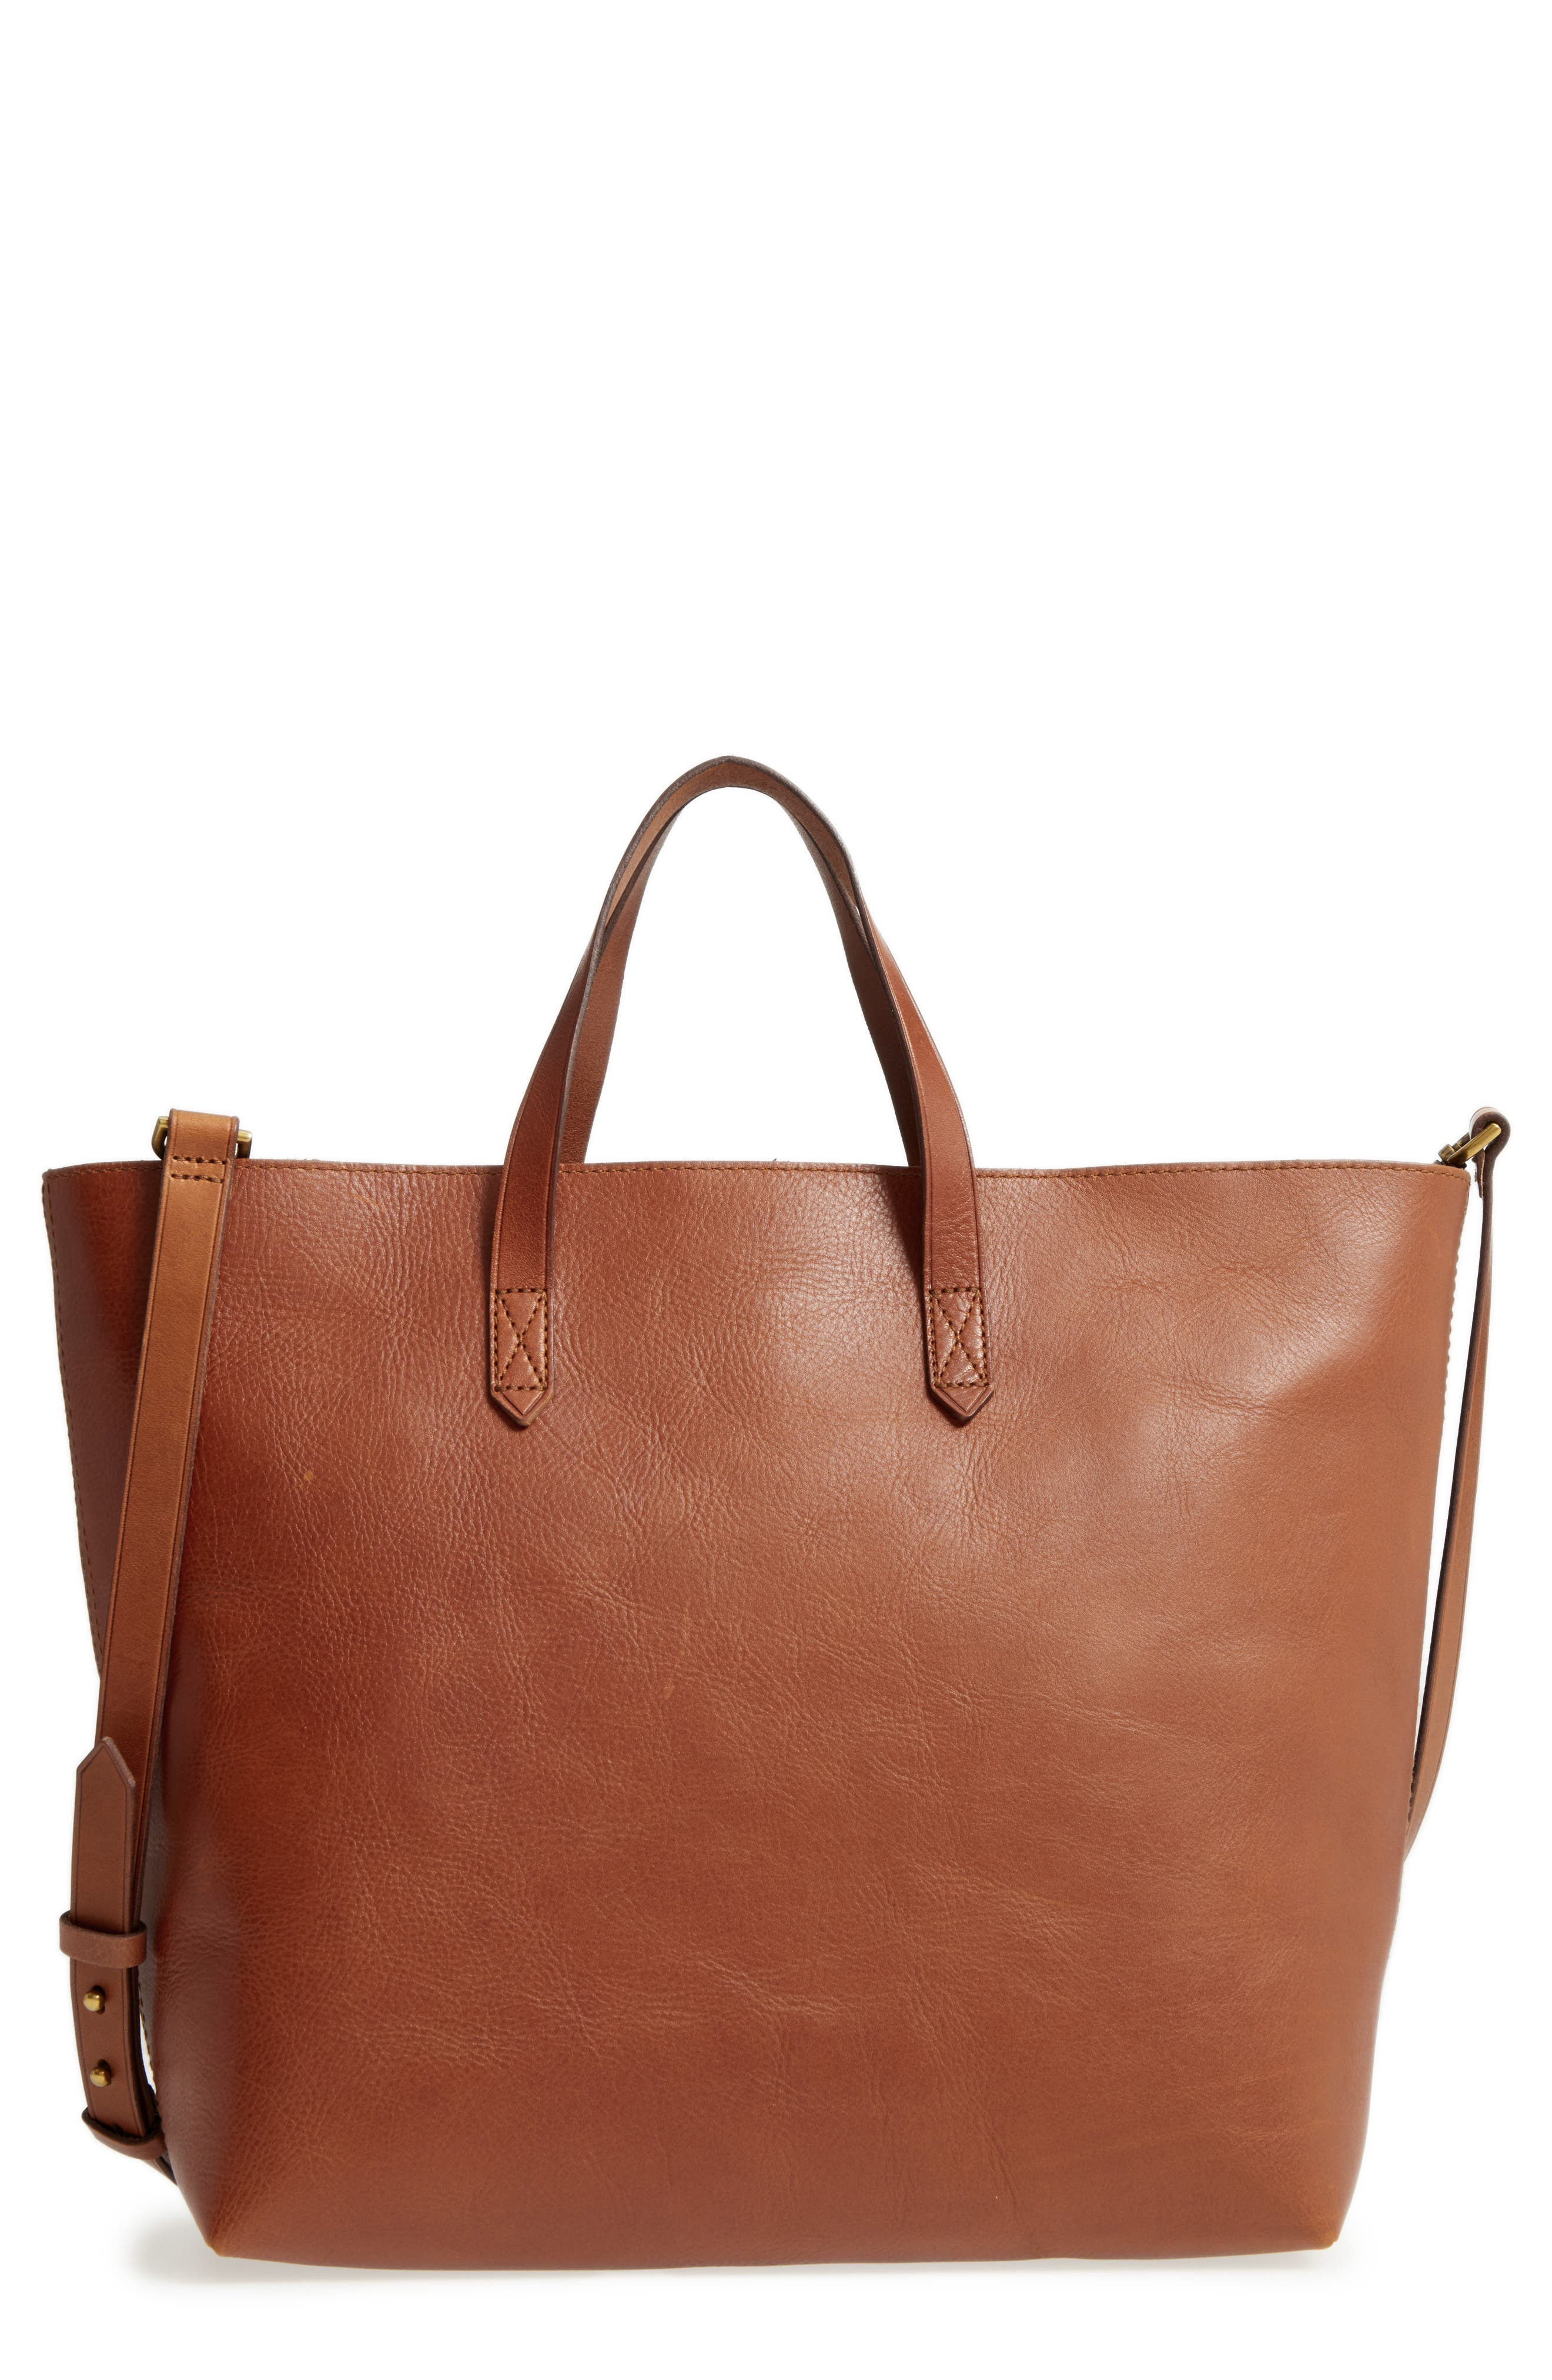 Madewell Zip Top Leather Tote